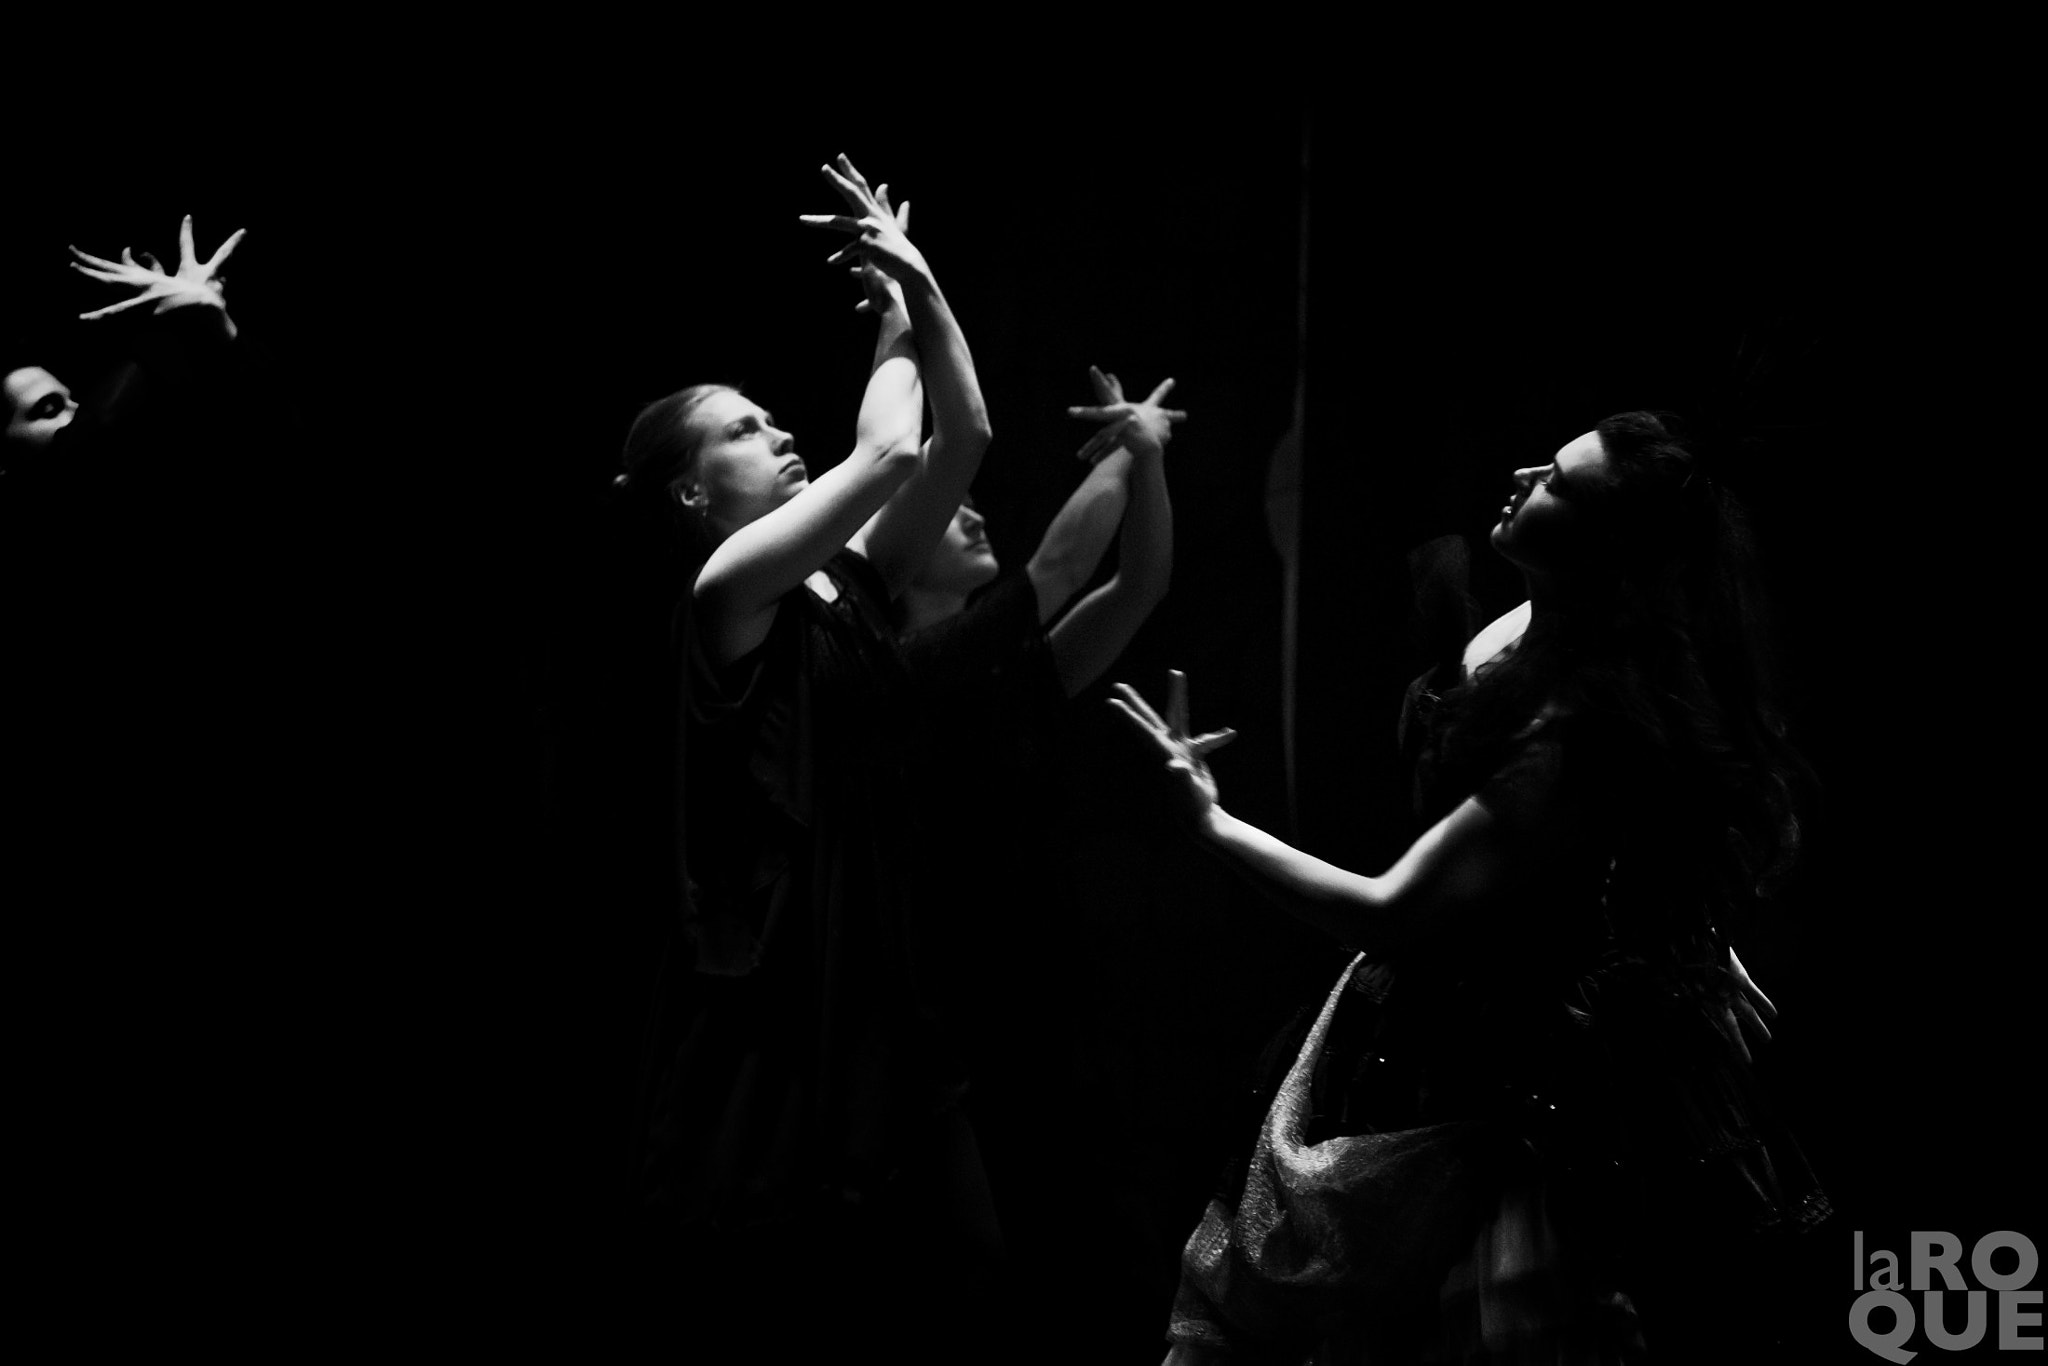 Photograph performers by Patrick La Roque on 500px